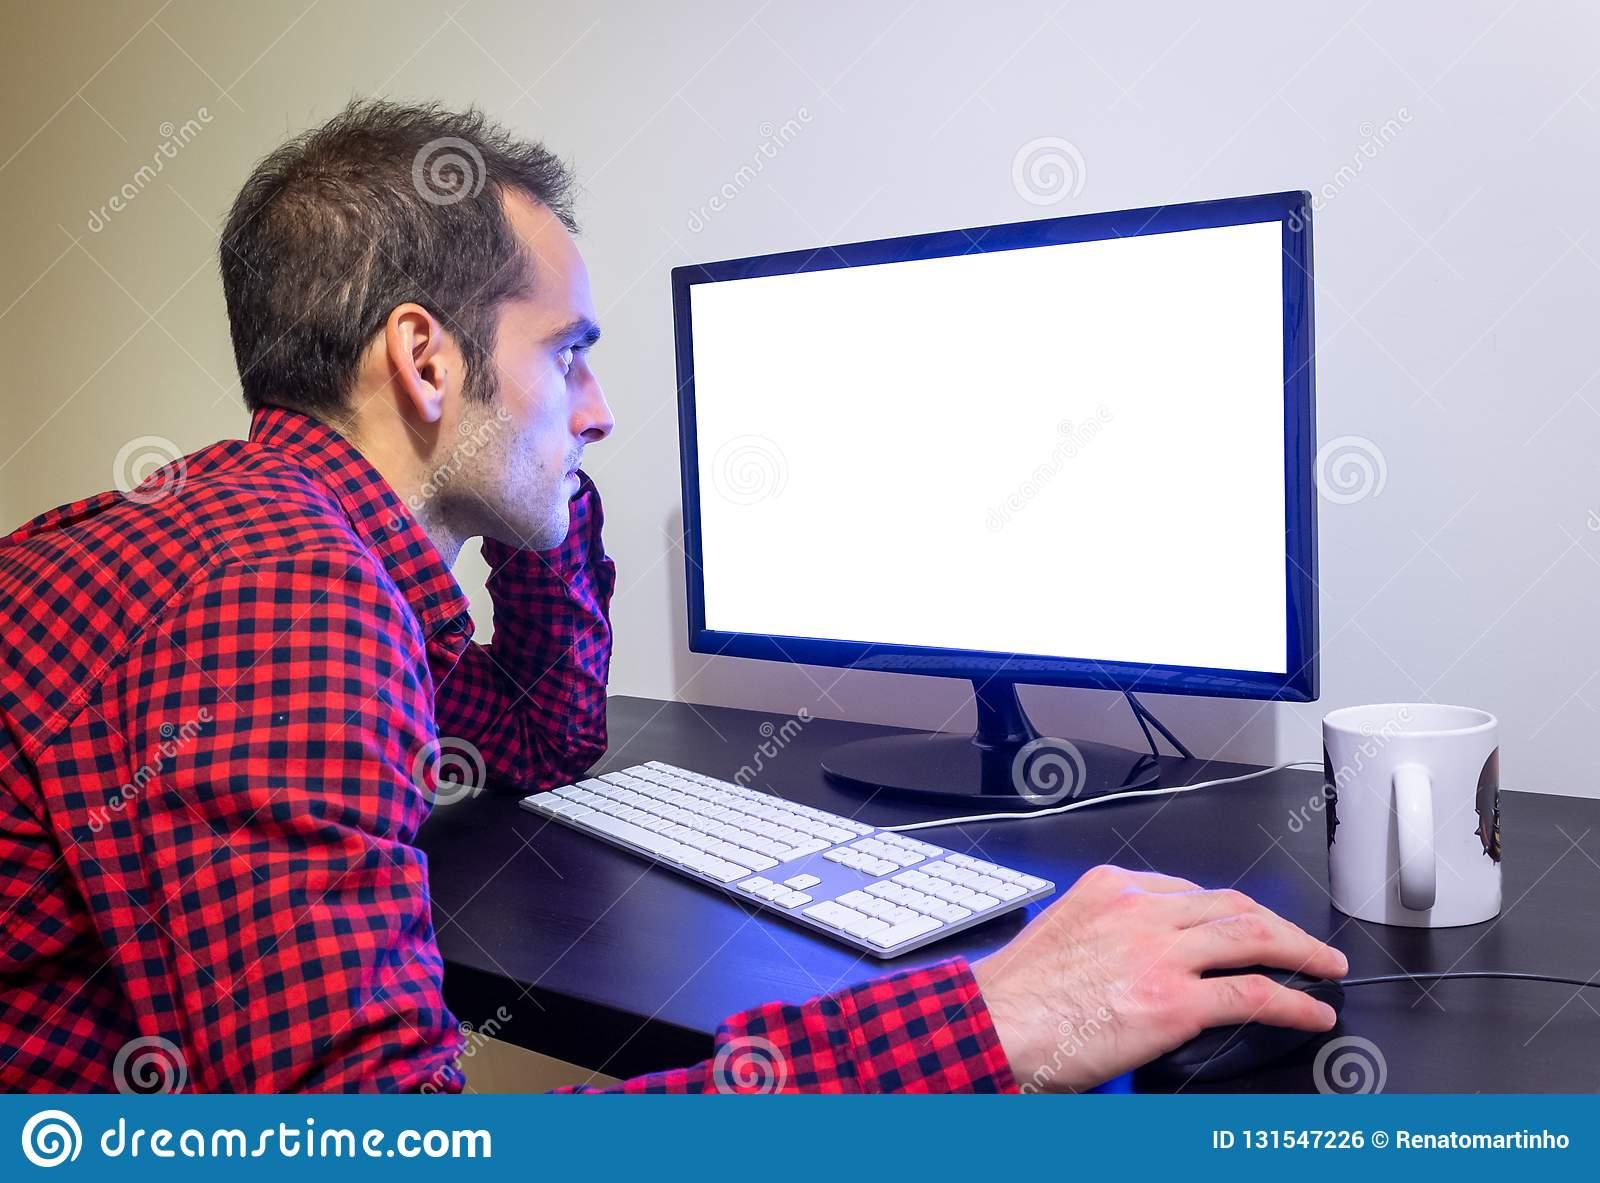 Focused Man Stares at Office Computer on Wooden Black Desk Mockup. Dotted Red Shirt, LCD Screen, Keyboard, Mouse, White Mug. Copy